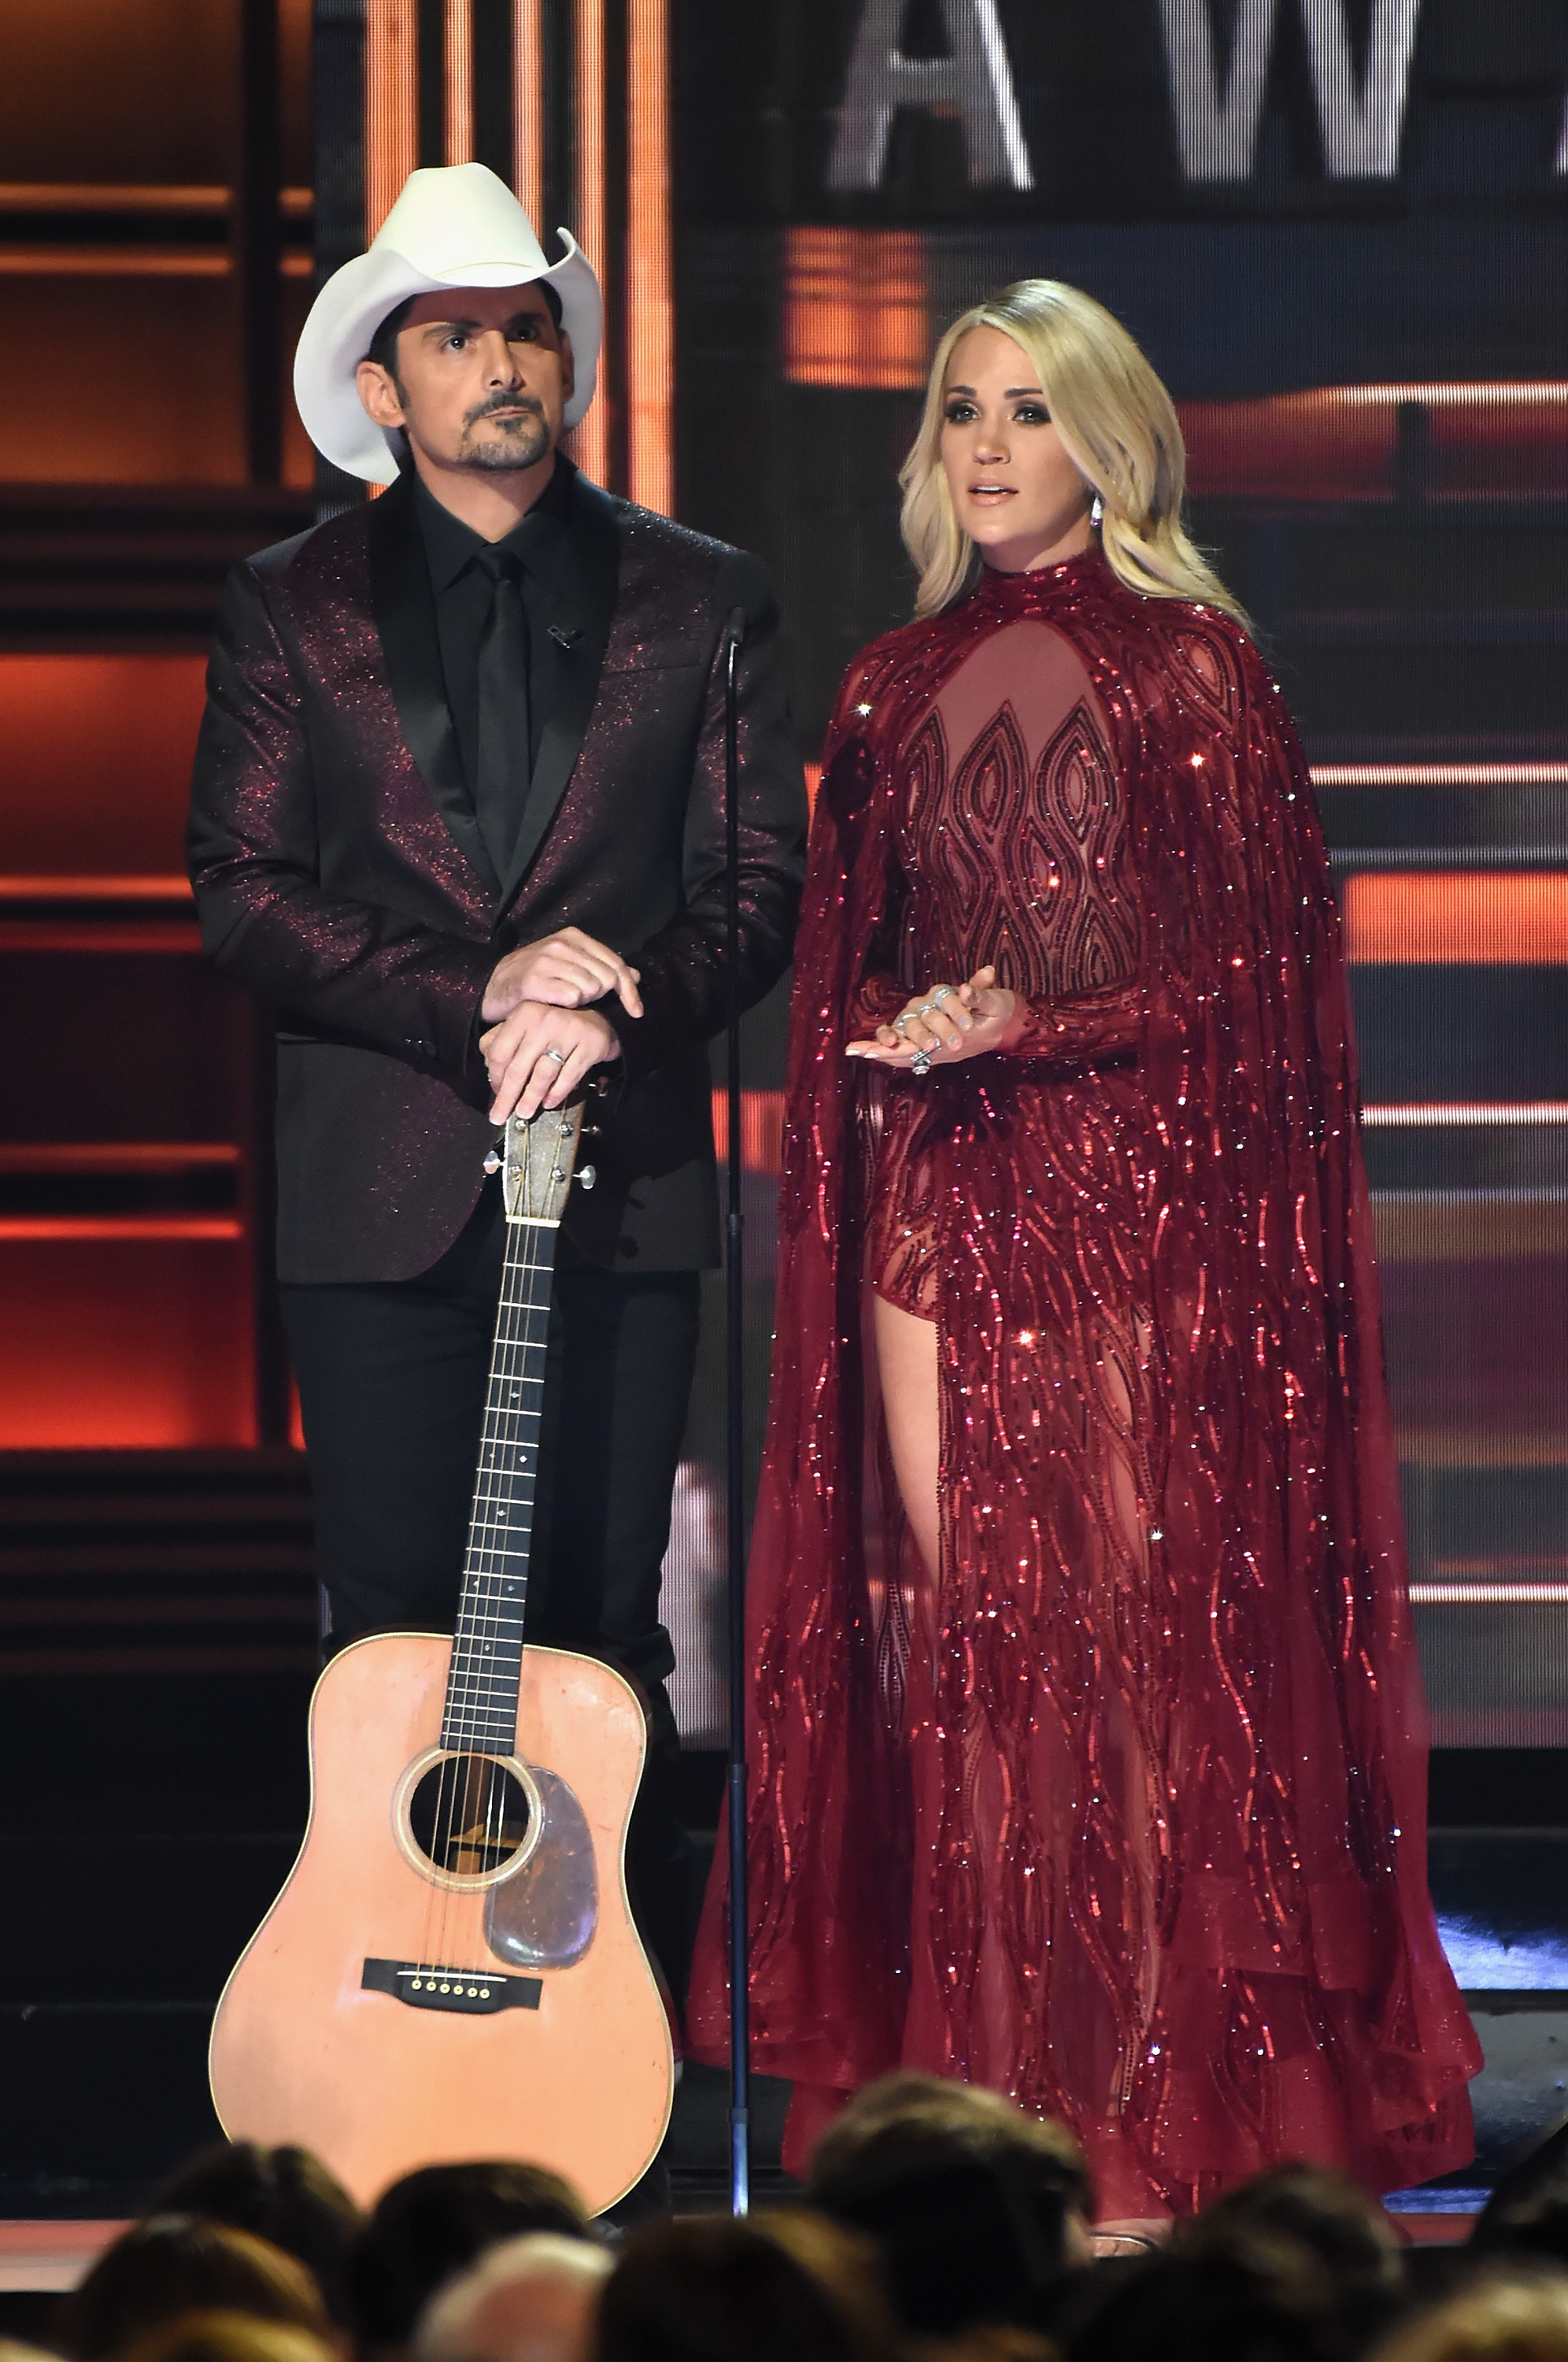 Co-hosts Brad Paisley and Carrie Underwood speak onstage at the 51st annual CMA Awards at the Bridgestone Arena on November 8, 2017 in Nashville, Tennessee.